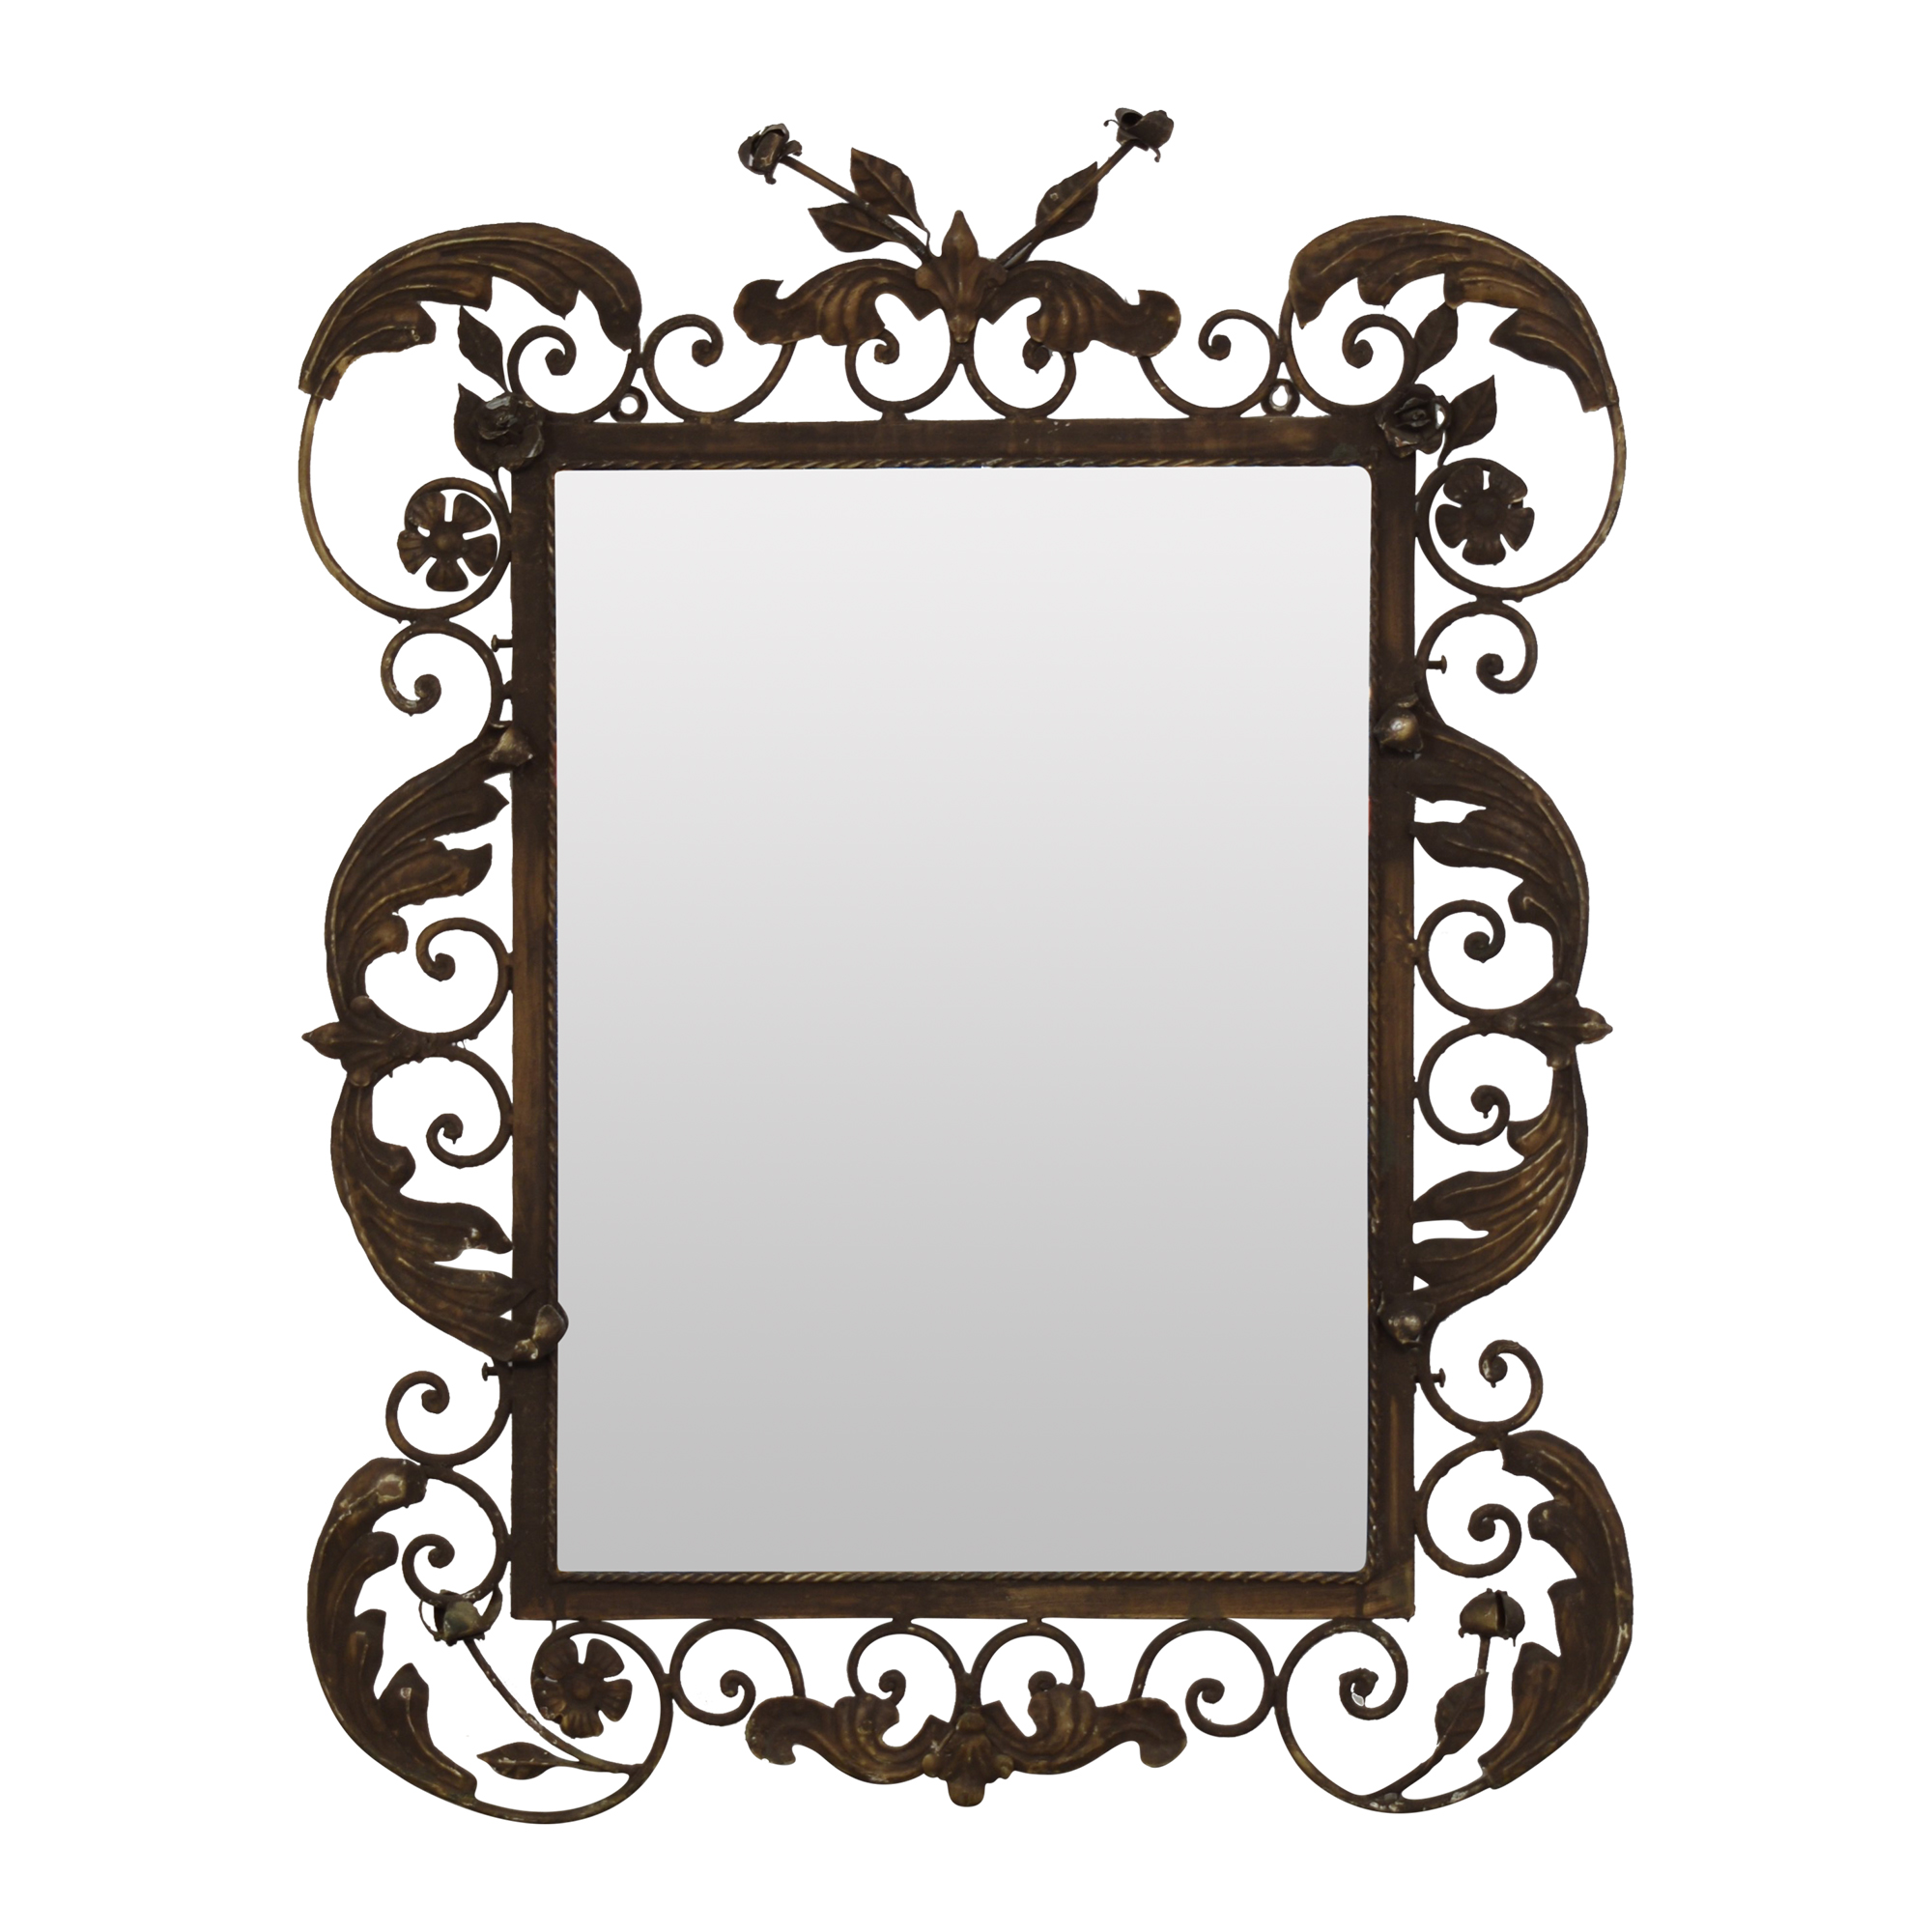 Decorative Wall Mirror / Mirrors